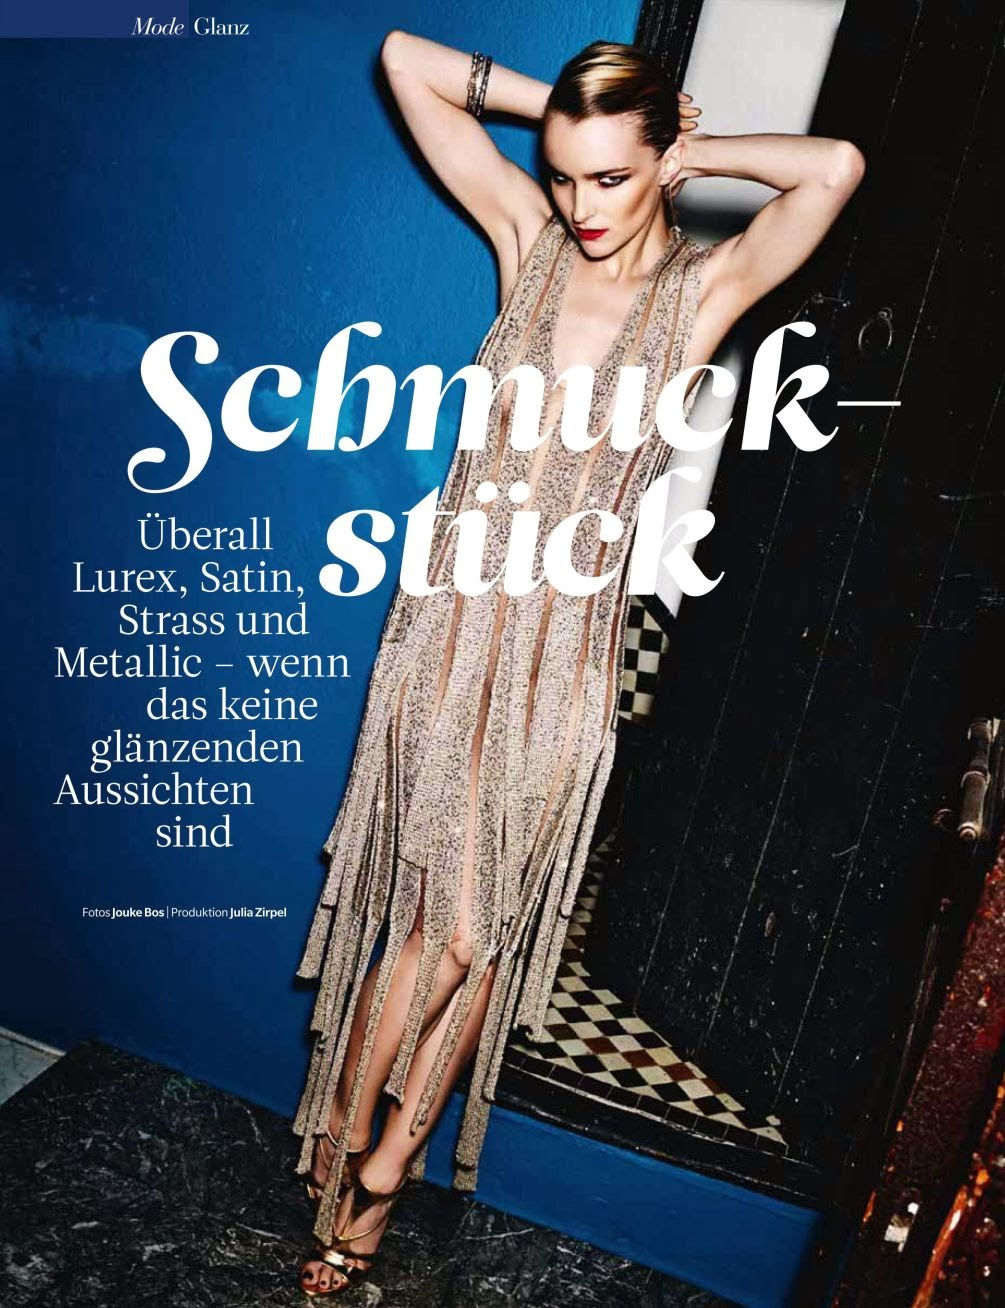 Sarah Seewer HQ Pictures Myself Germany Magazine Photoshoot March 2014